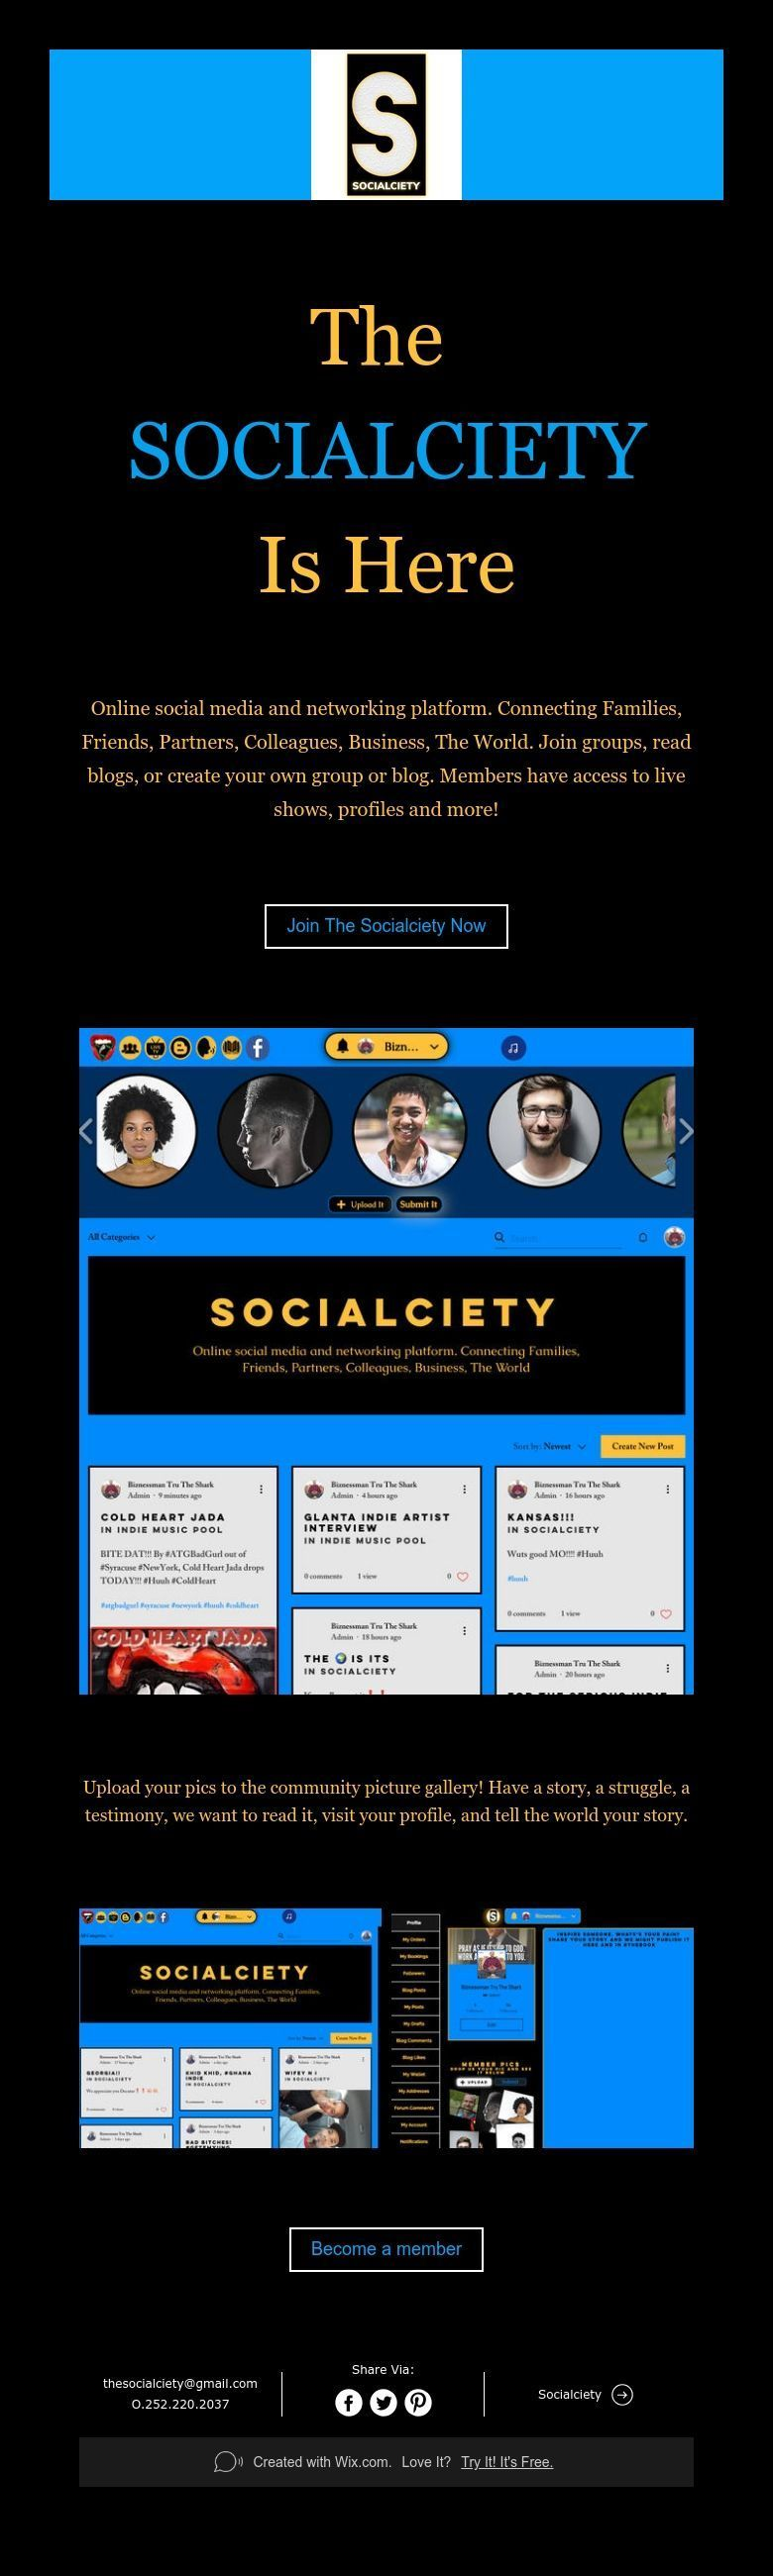 The SOCIALCIETY Is Here Social media, Connection